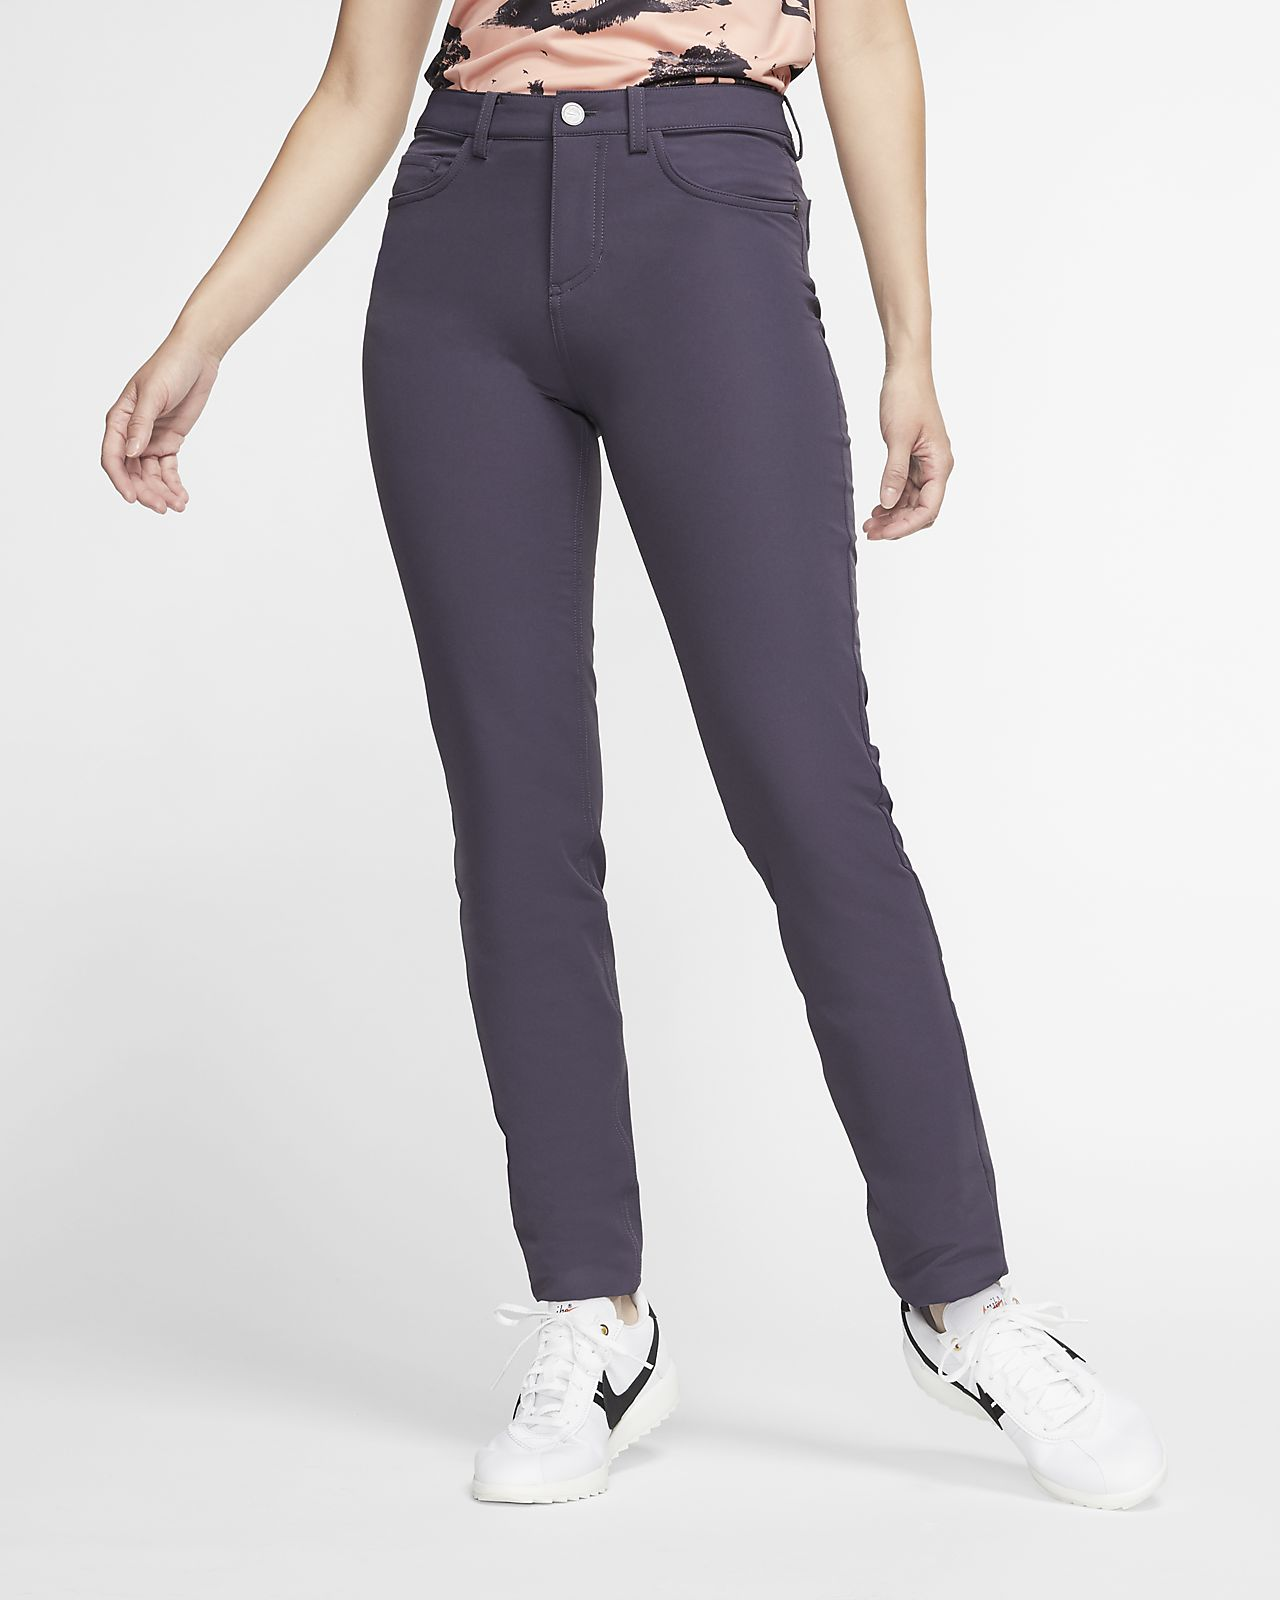 Pantaloni da golf Nike Repel - Donna